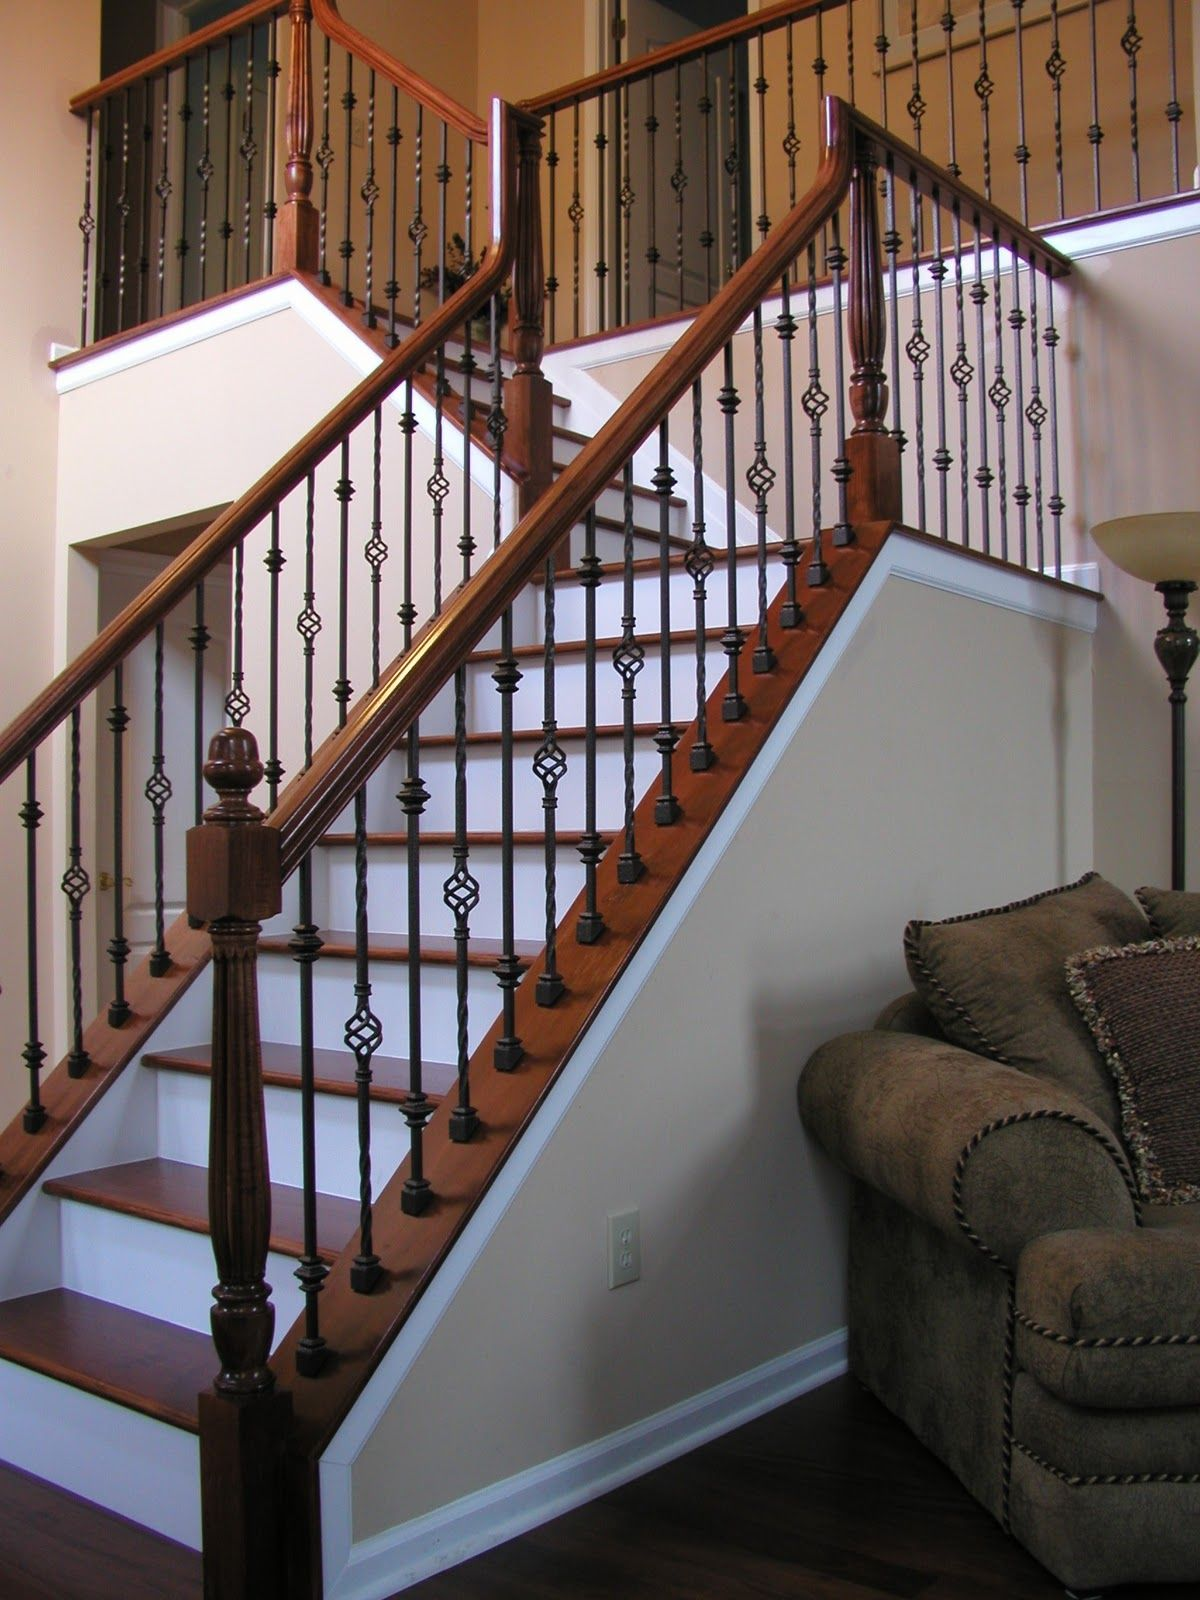 Pin By Beth Gould On Home Sweet Home On Hyde Street Wrought Iron   Wrought Iron Railing Interior   Walnut Iron   Wood   Farmhouse   Country Style   Horizontal